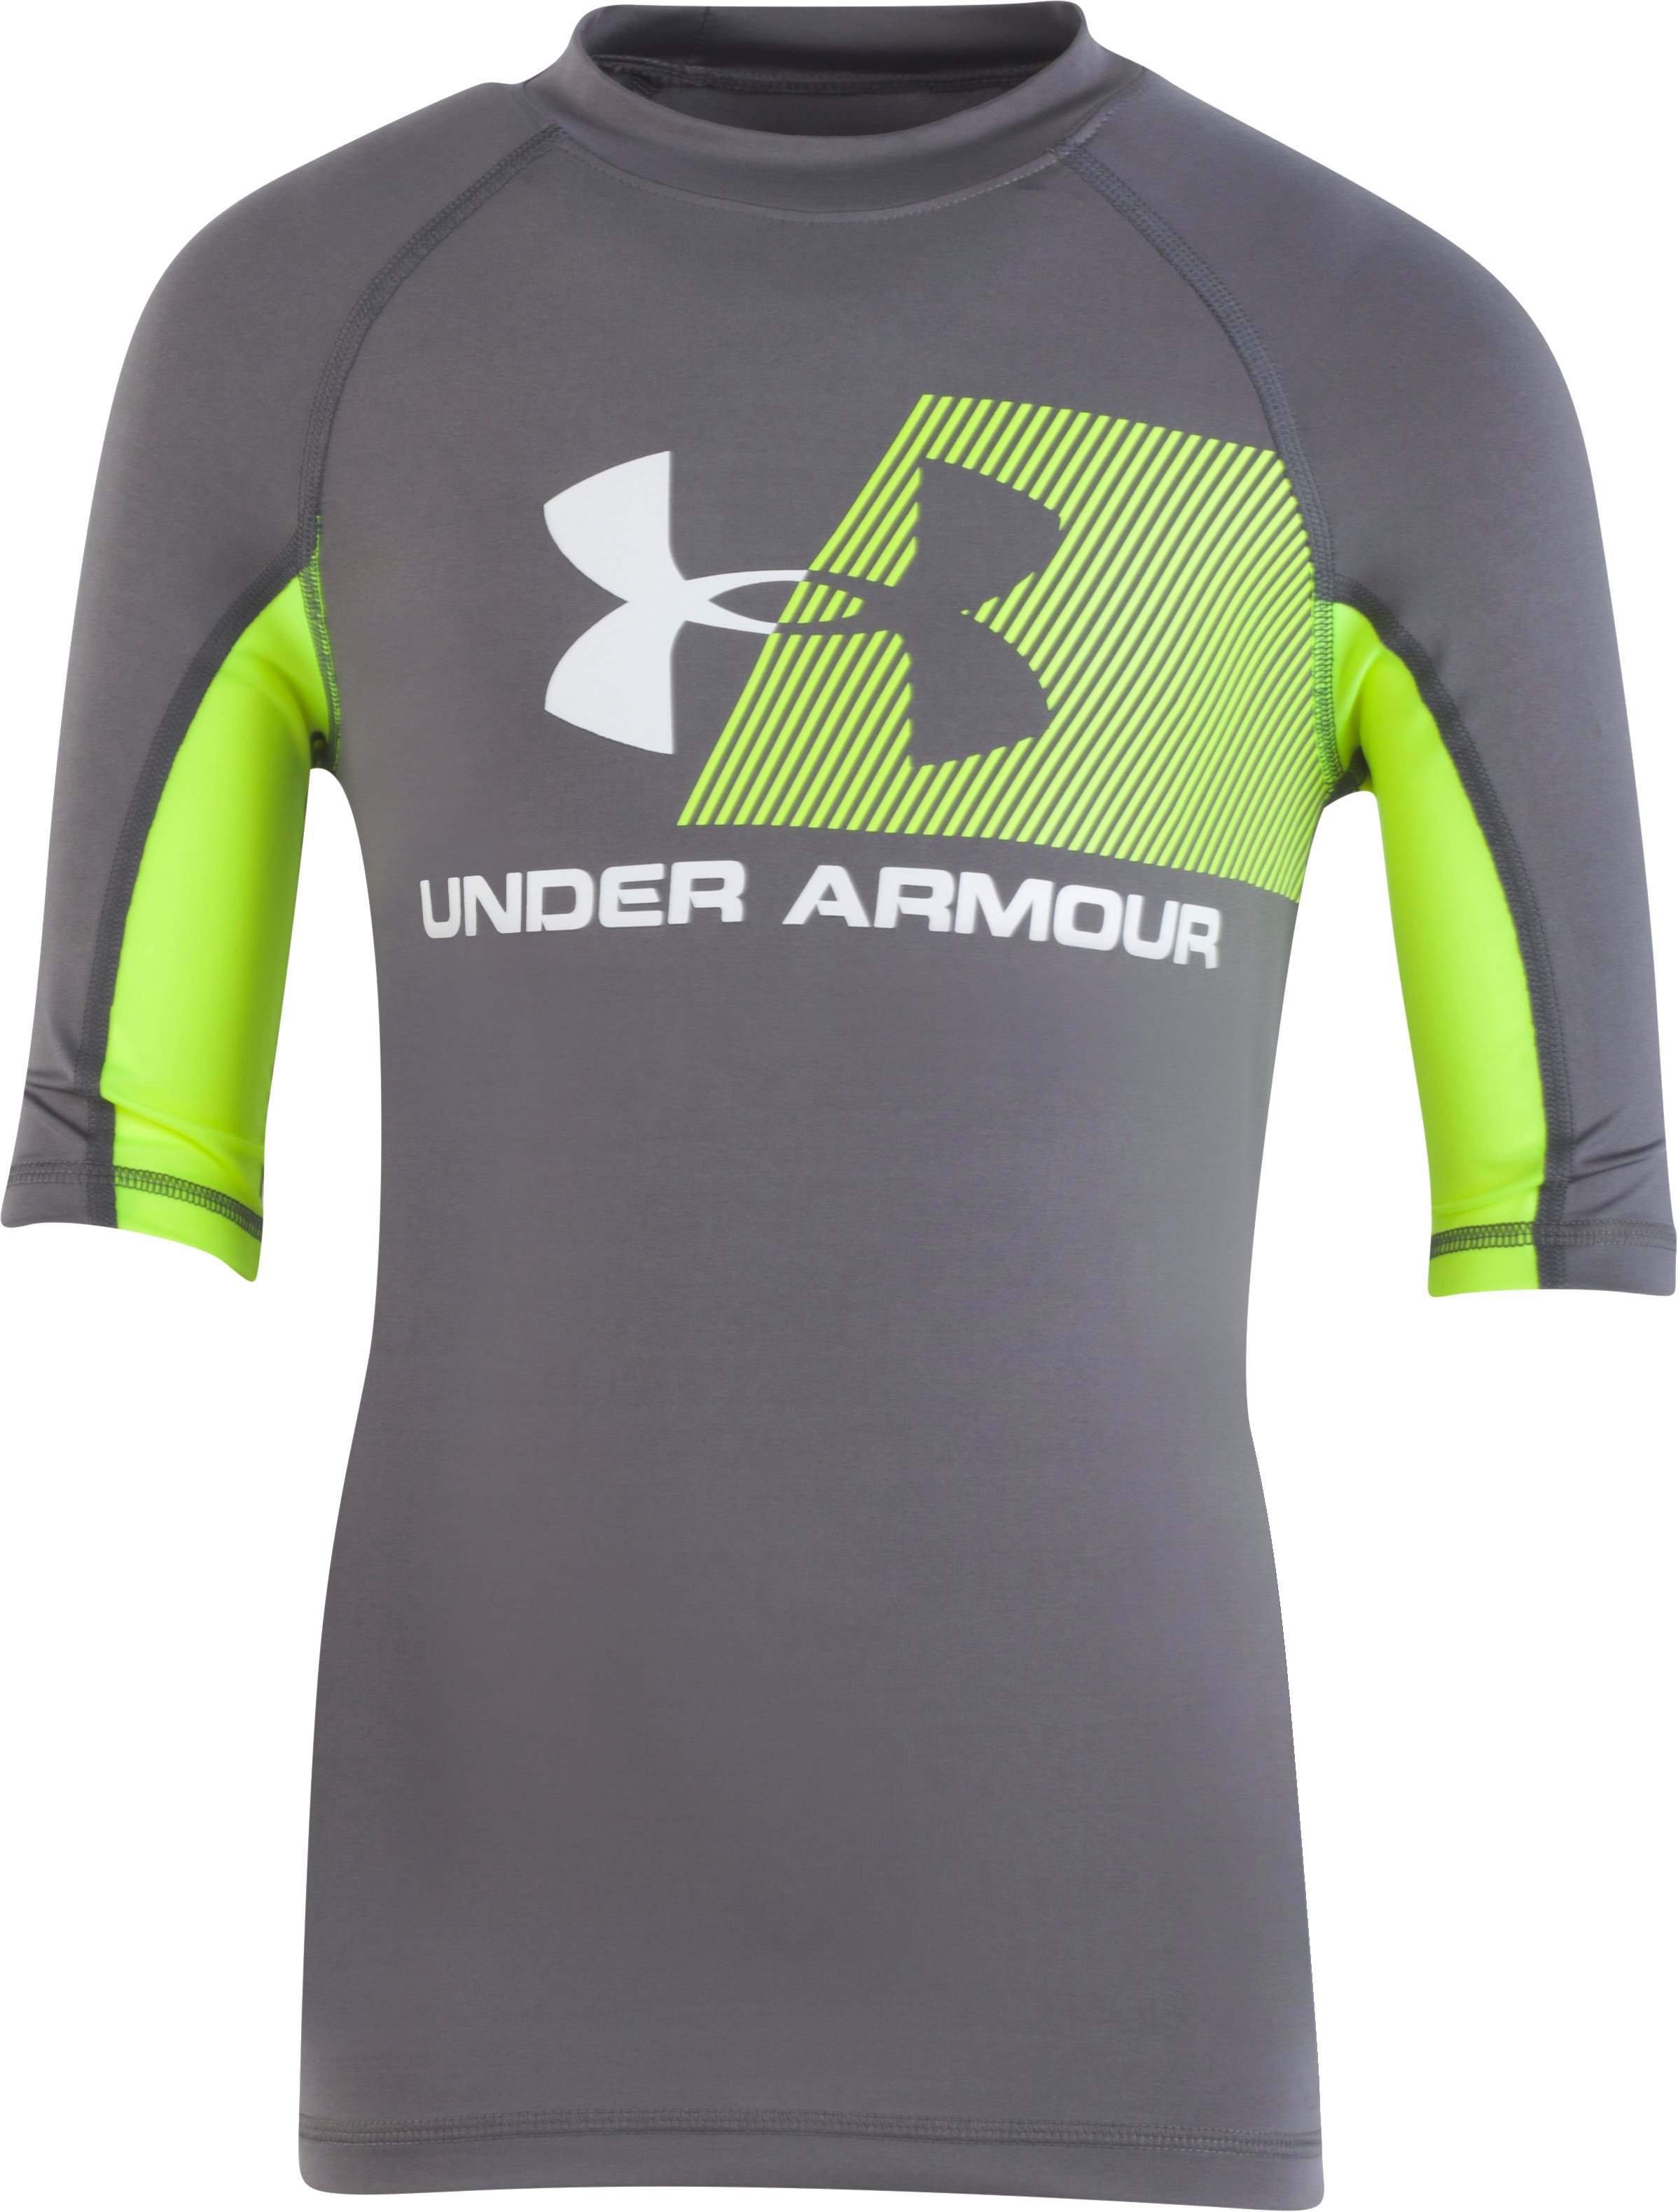 Boys' Toddler UA H2O Reveal Short Sleeve Rashguard 2 Colors $27.00